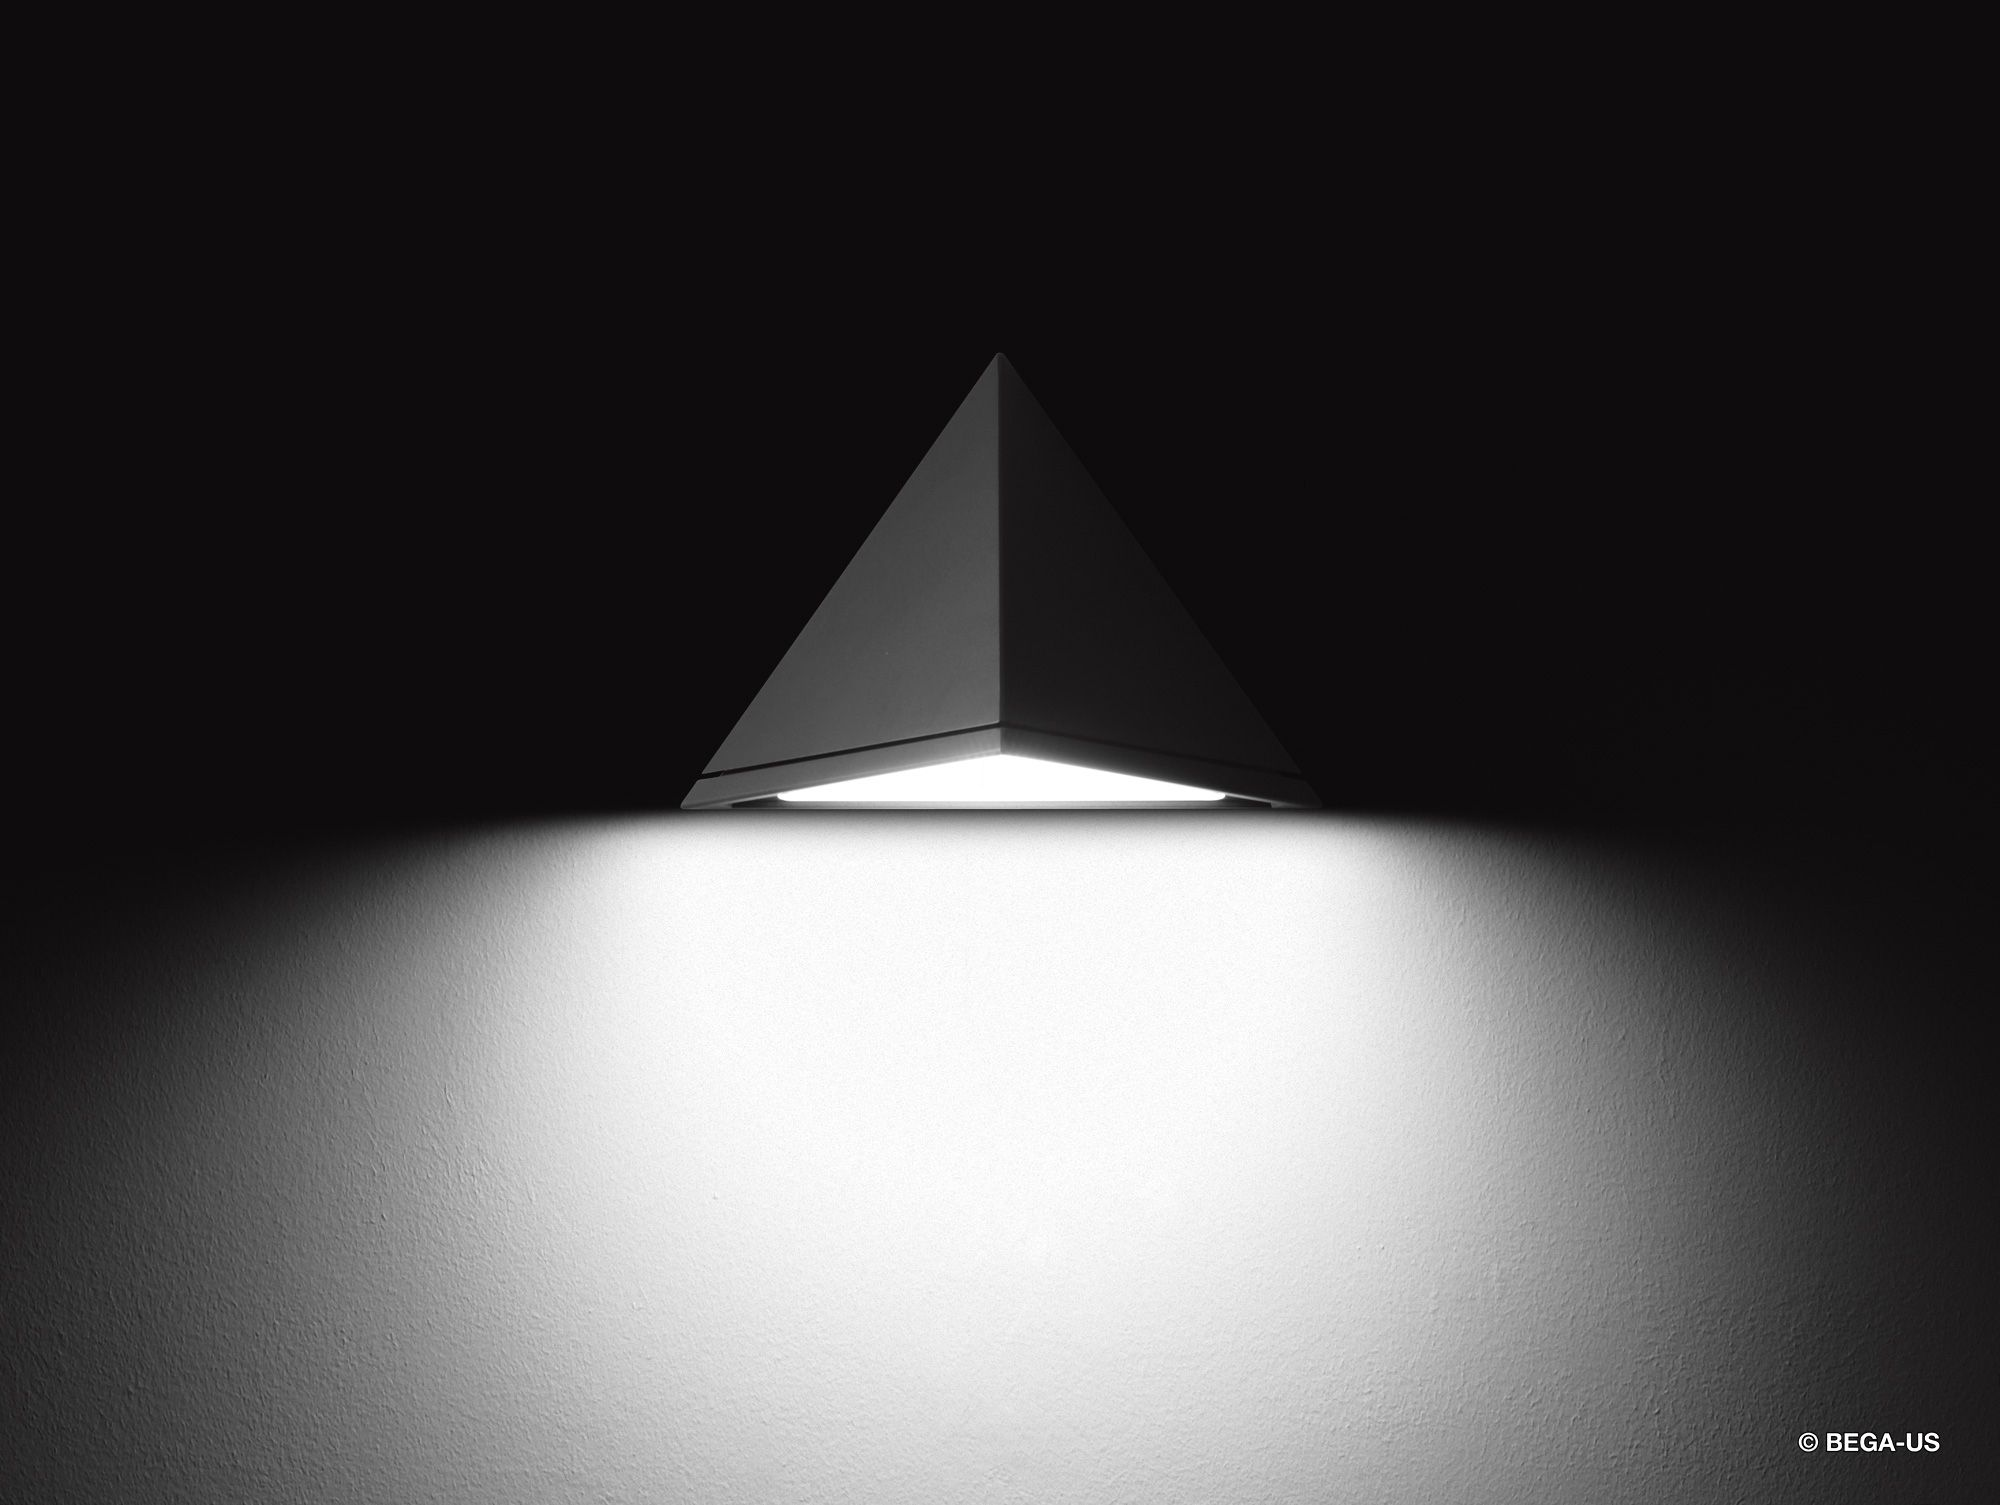 Luminaire Indirect tout wall luminaire with shielded light source; designed for direct